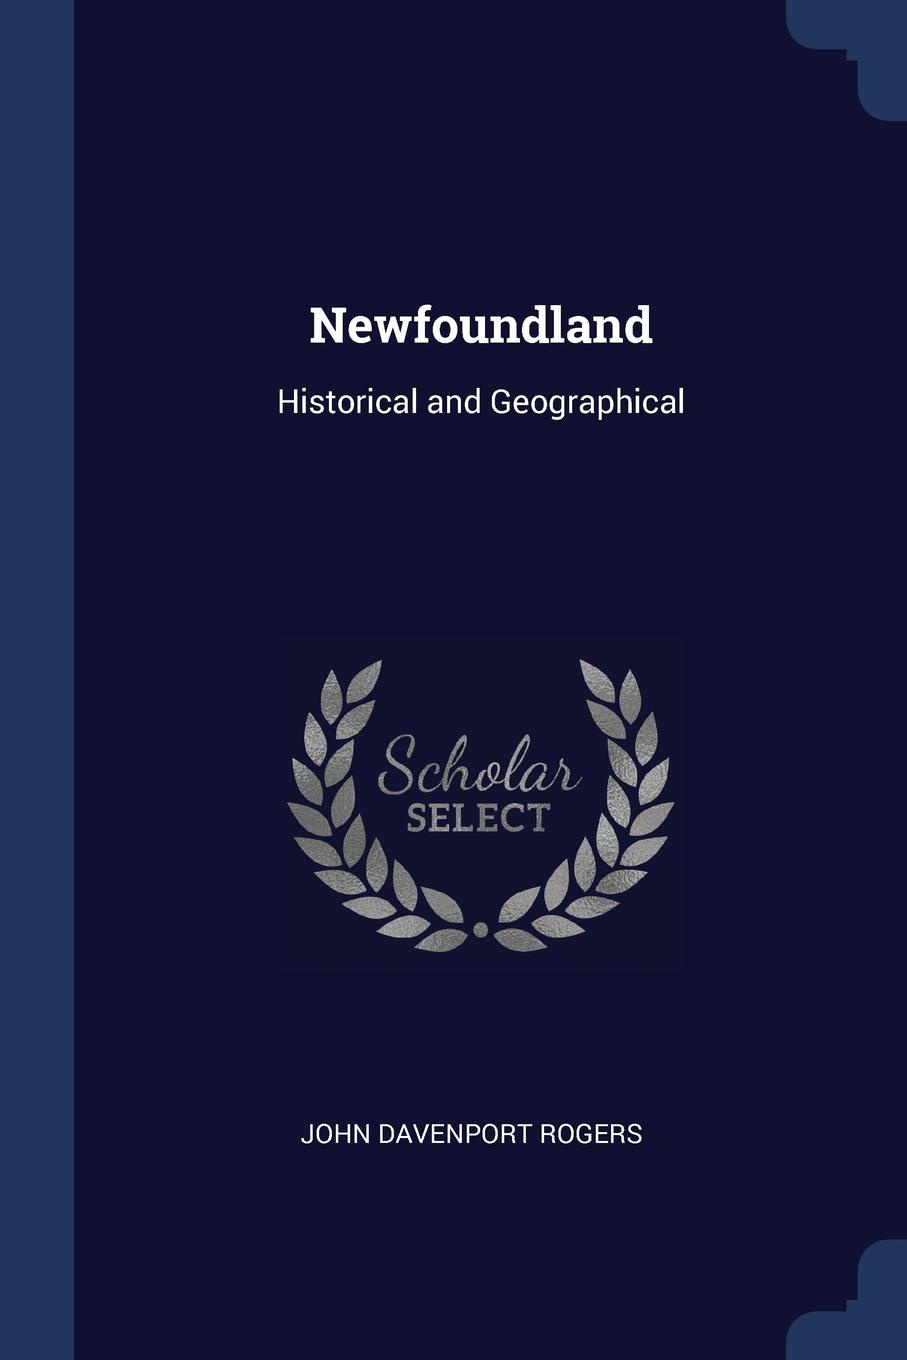 Newfoundland. Historical and Geographical. John Davenport Rogers